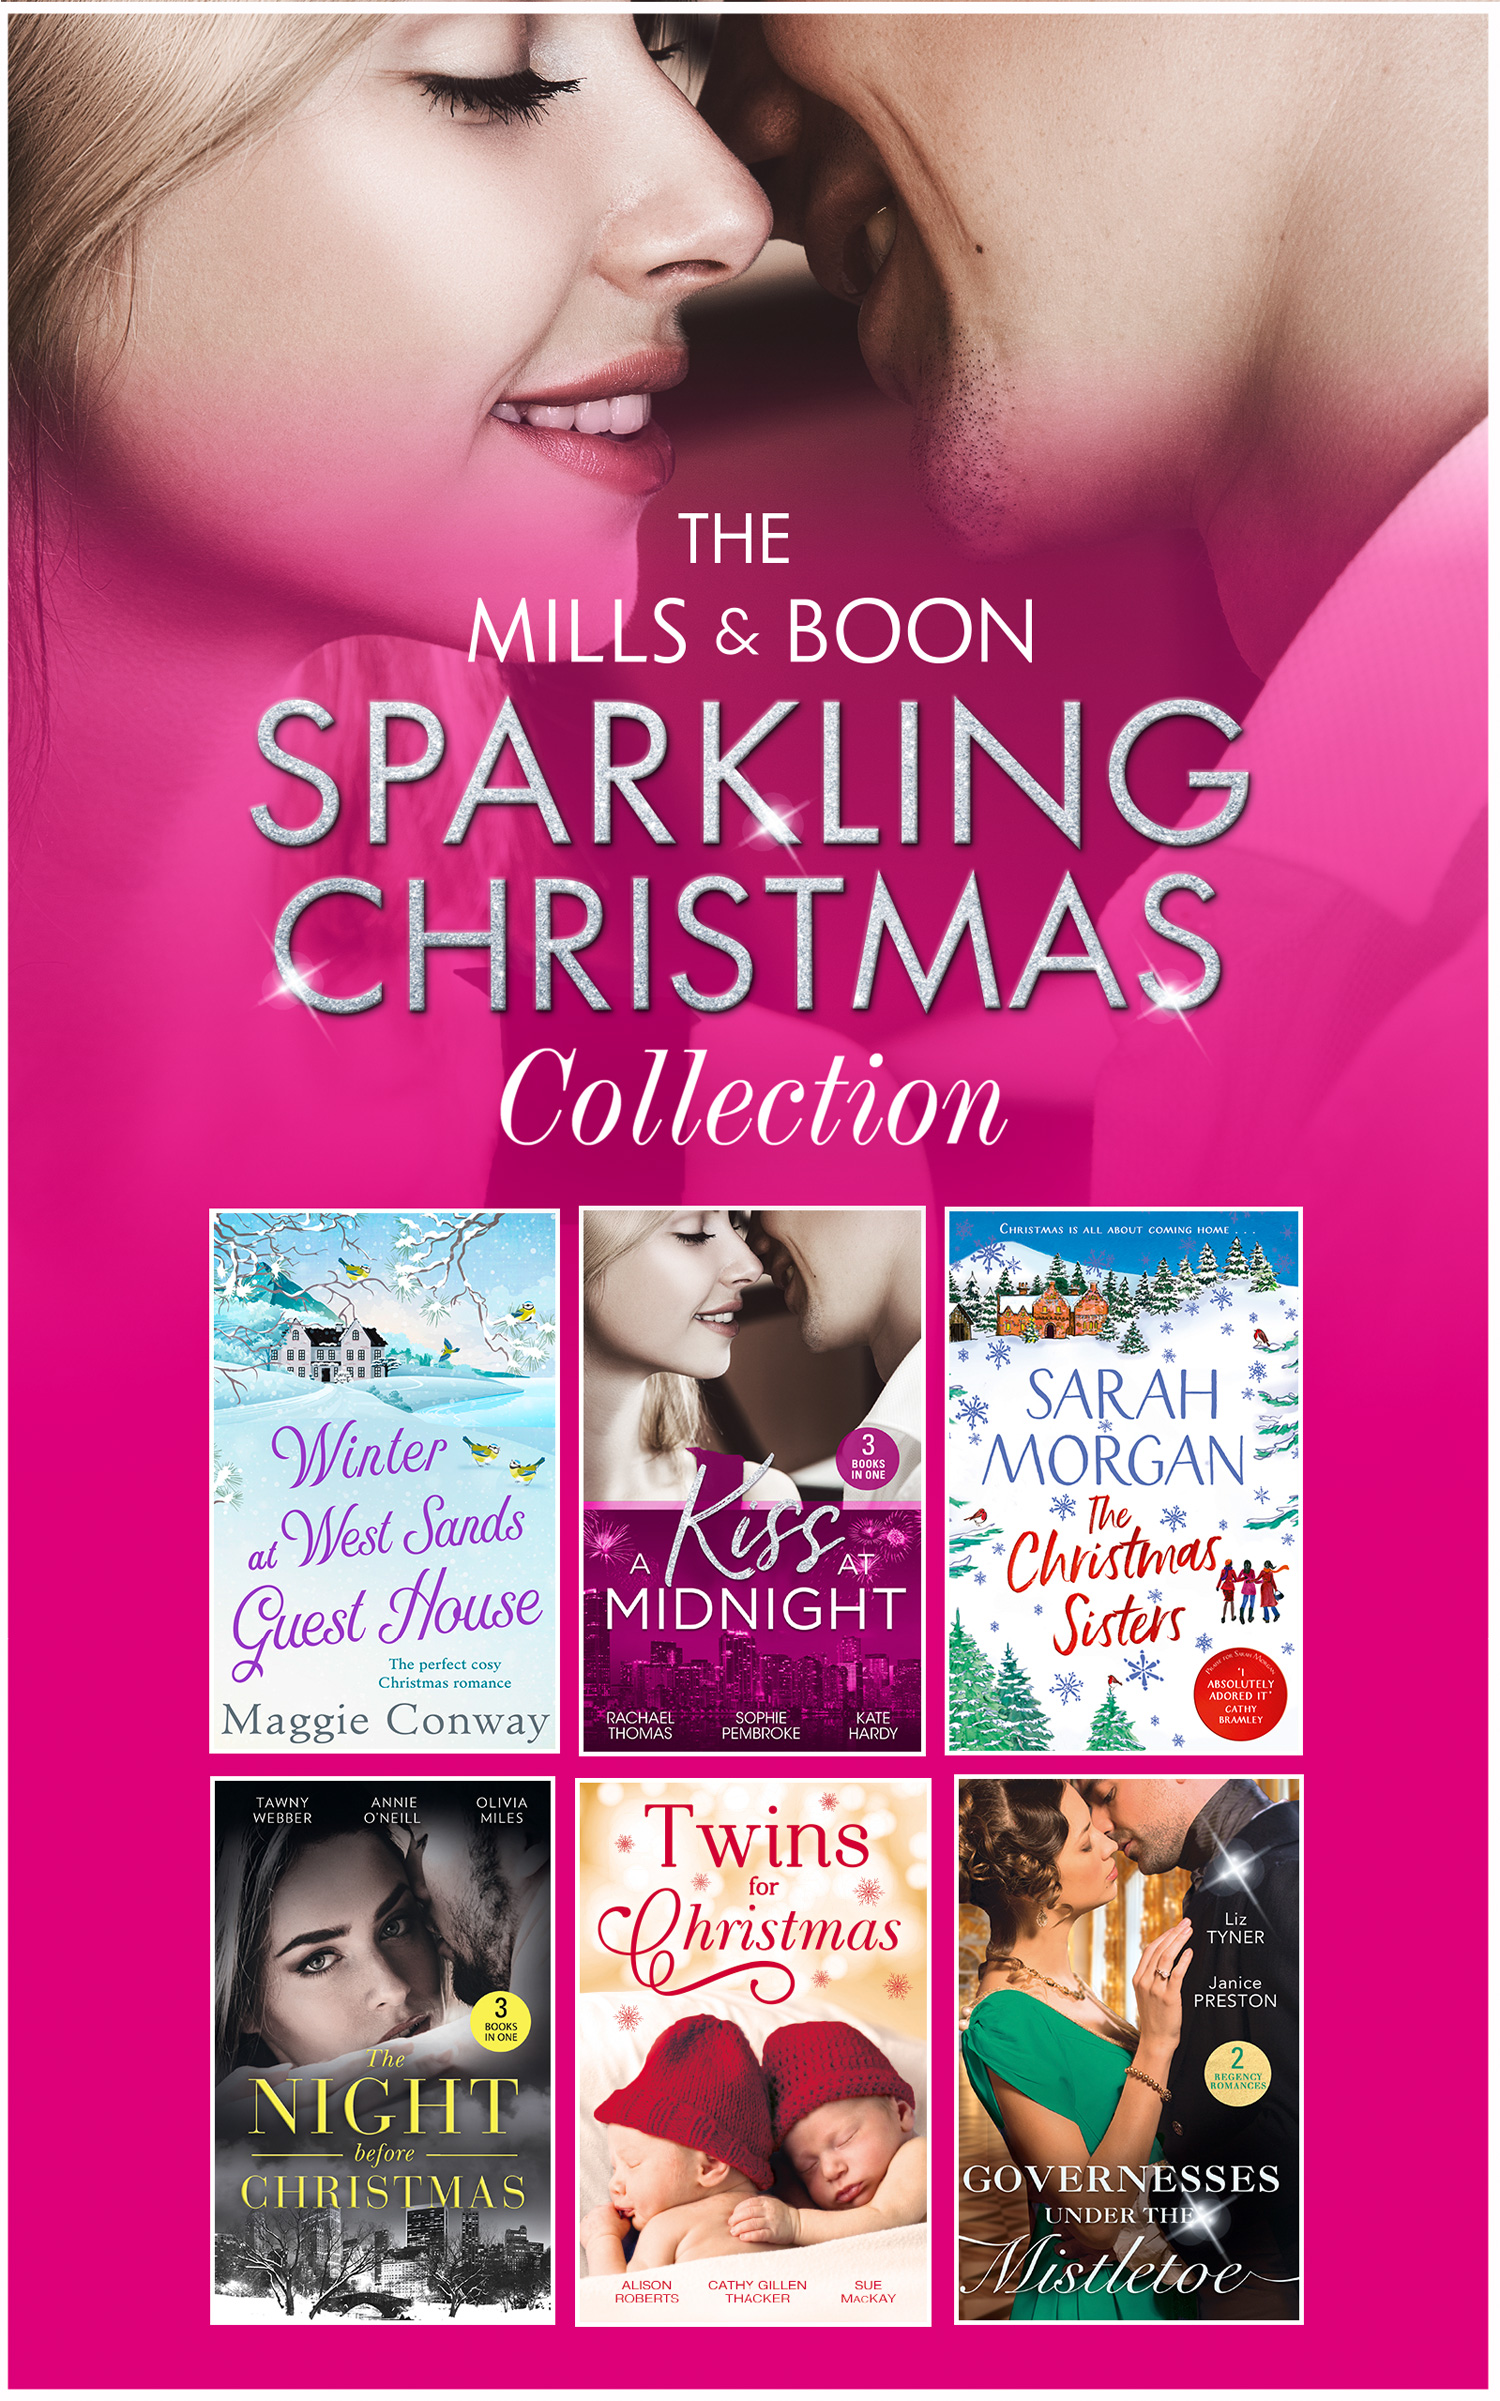 The Mills & Boon Sparkling Christmas Collection